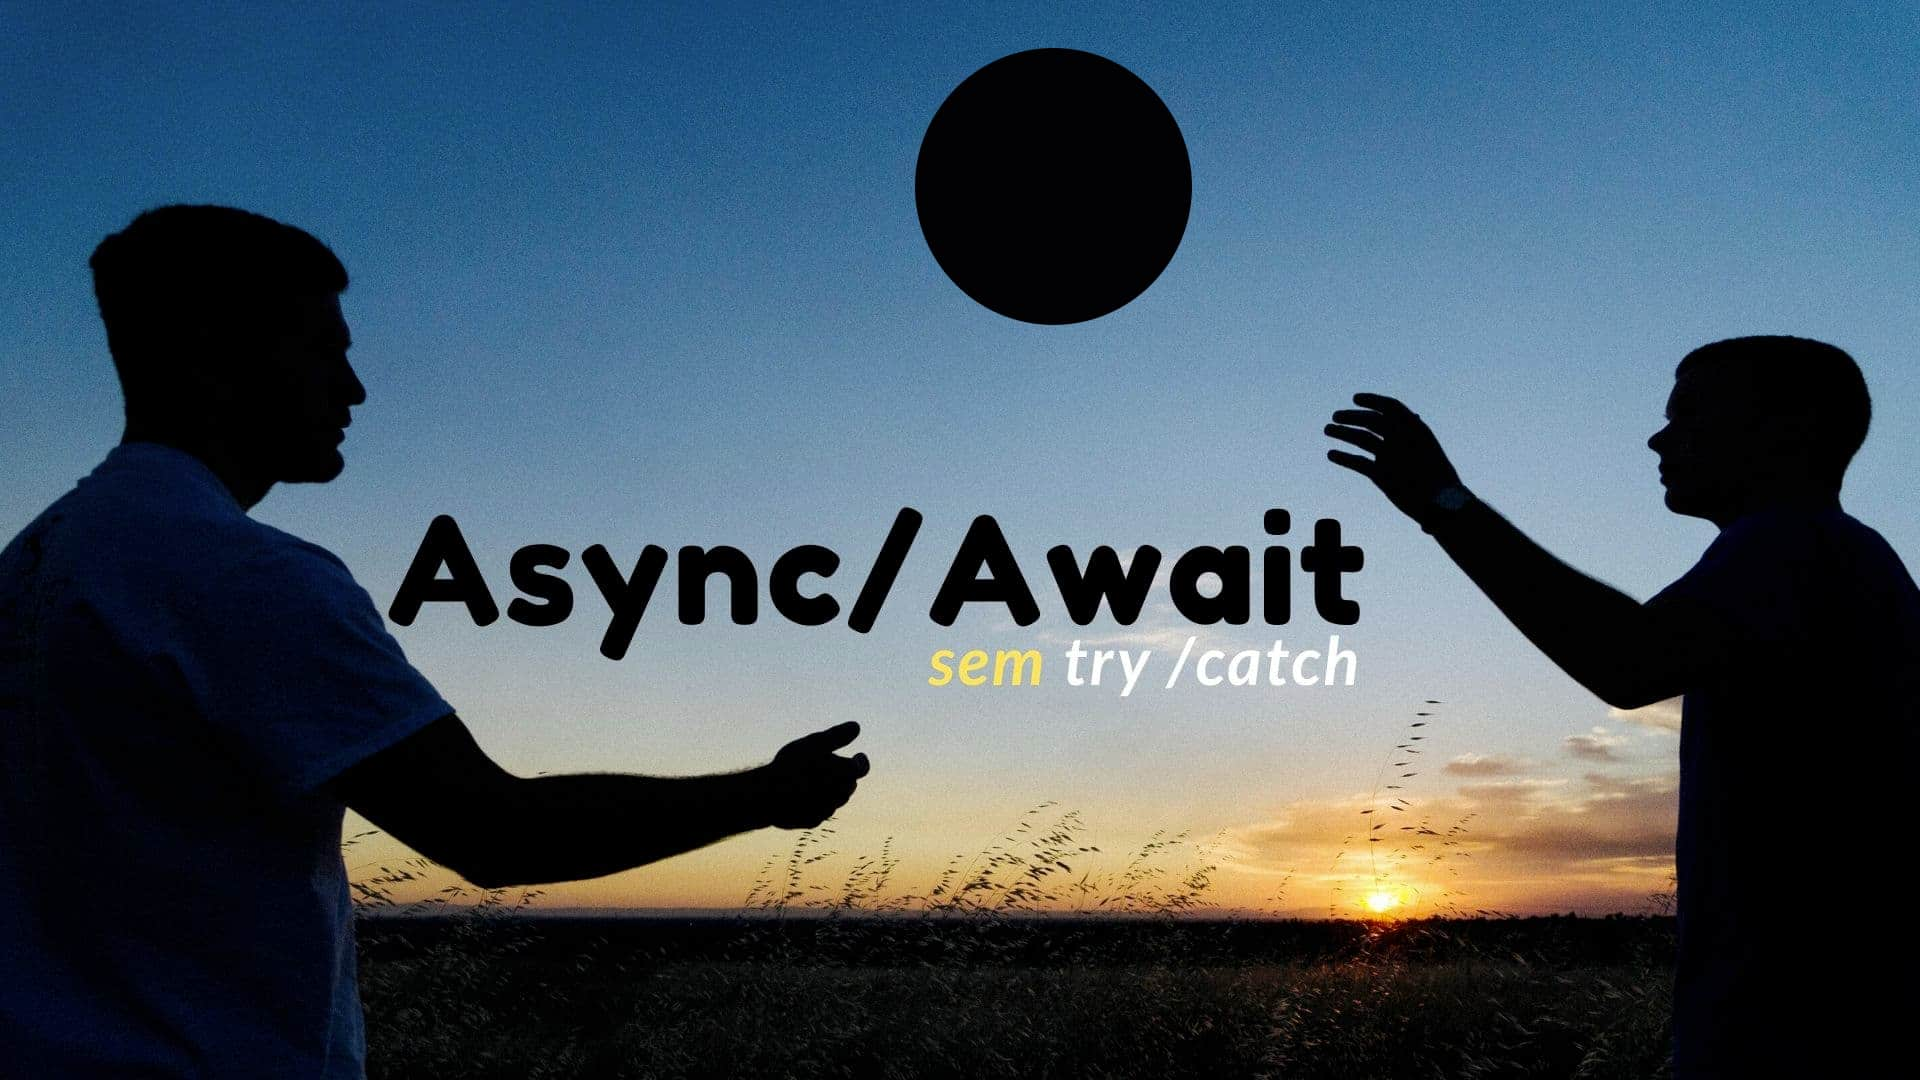 Async/Await sem Try/Catch